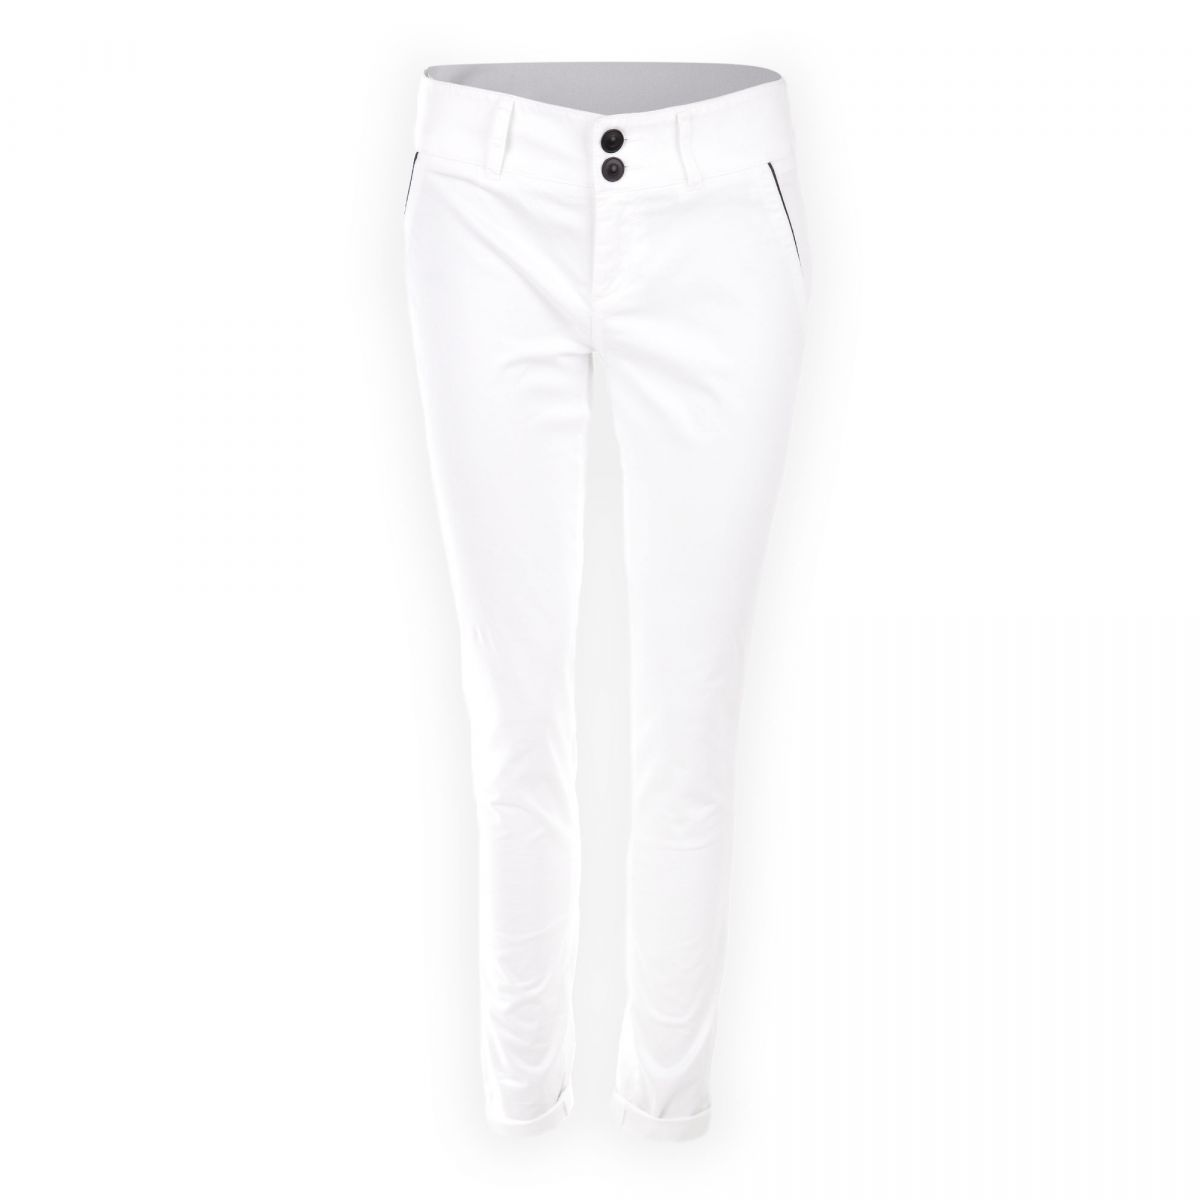 On Femme Coton Chino Prix En You Fluide À Blanc Coupe Pantalon wxgq0Za1